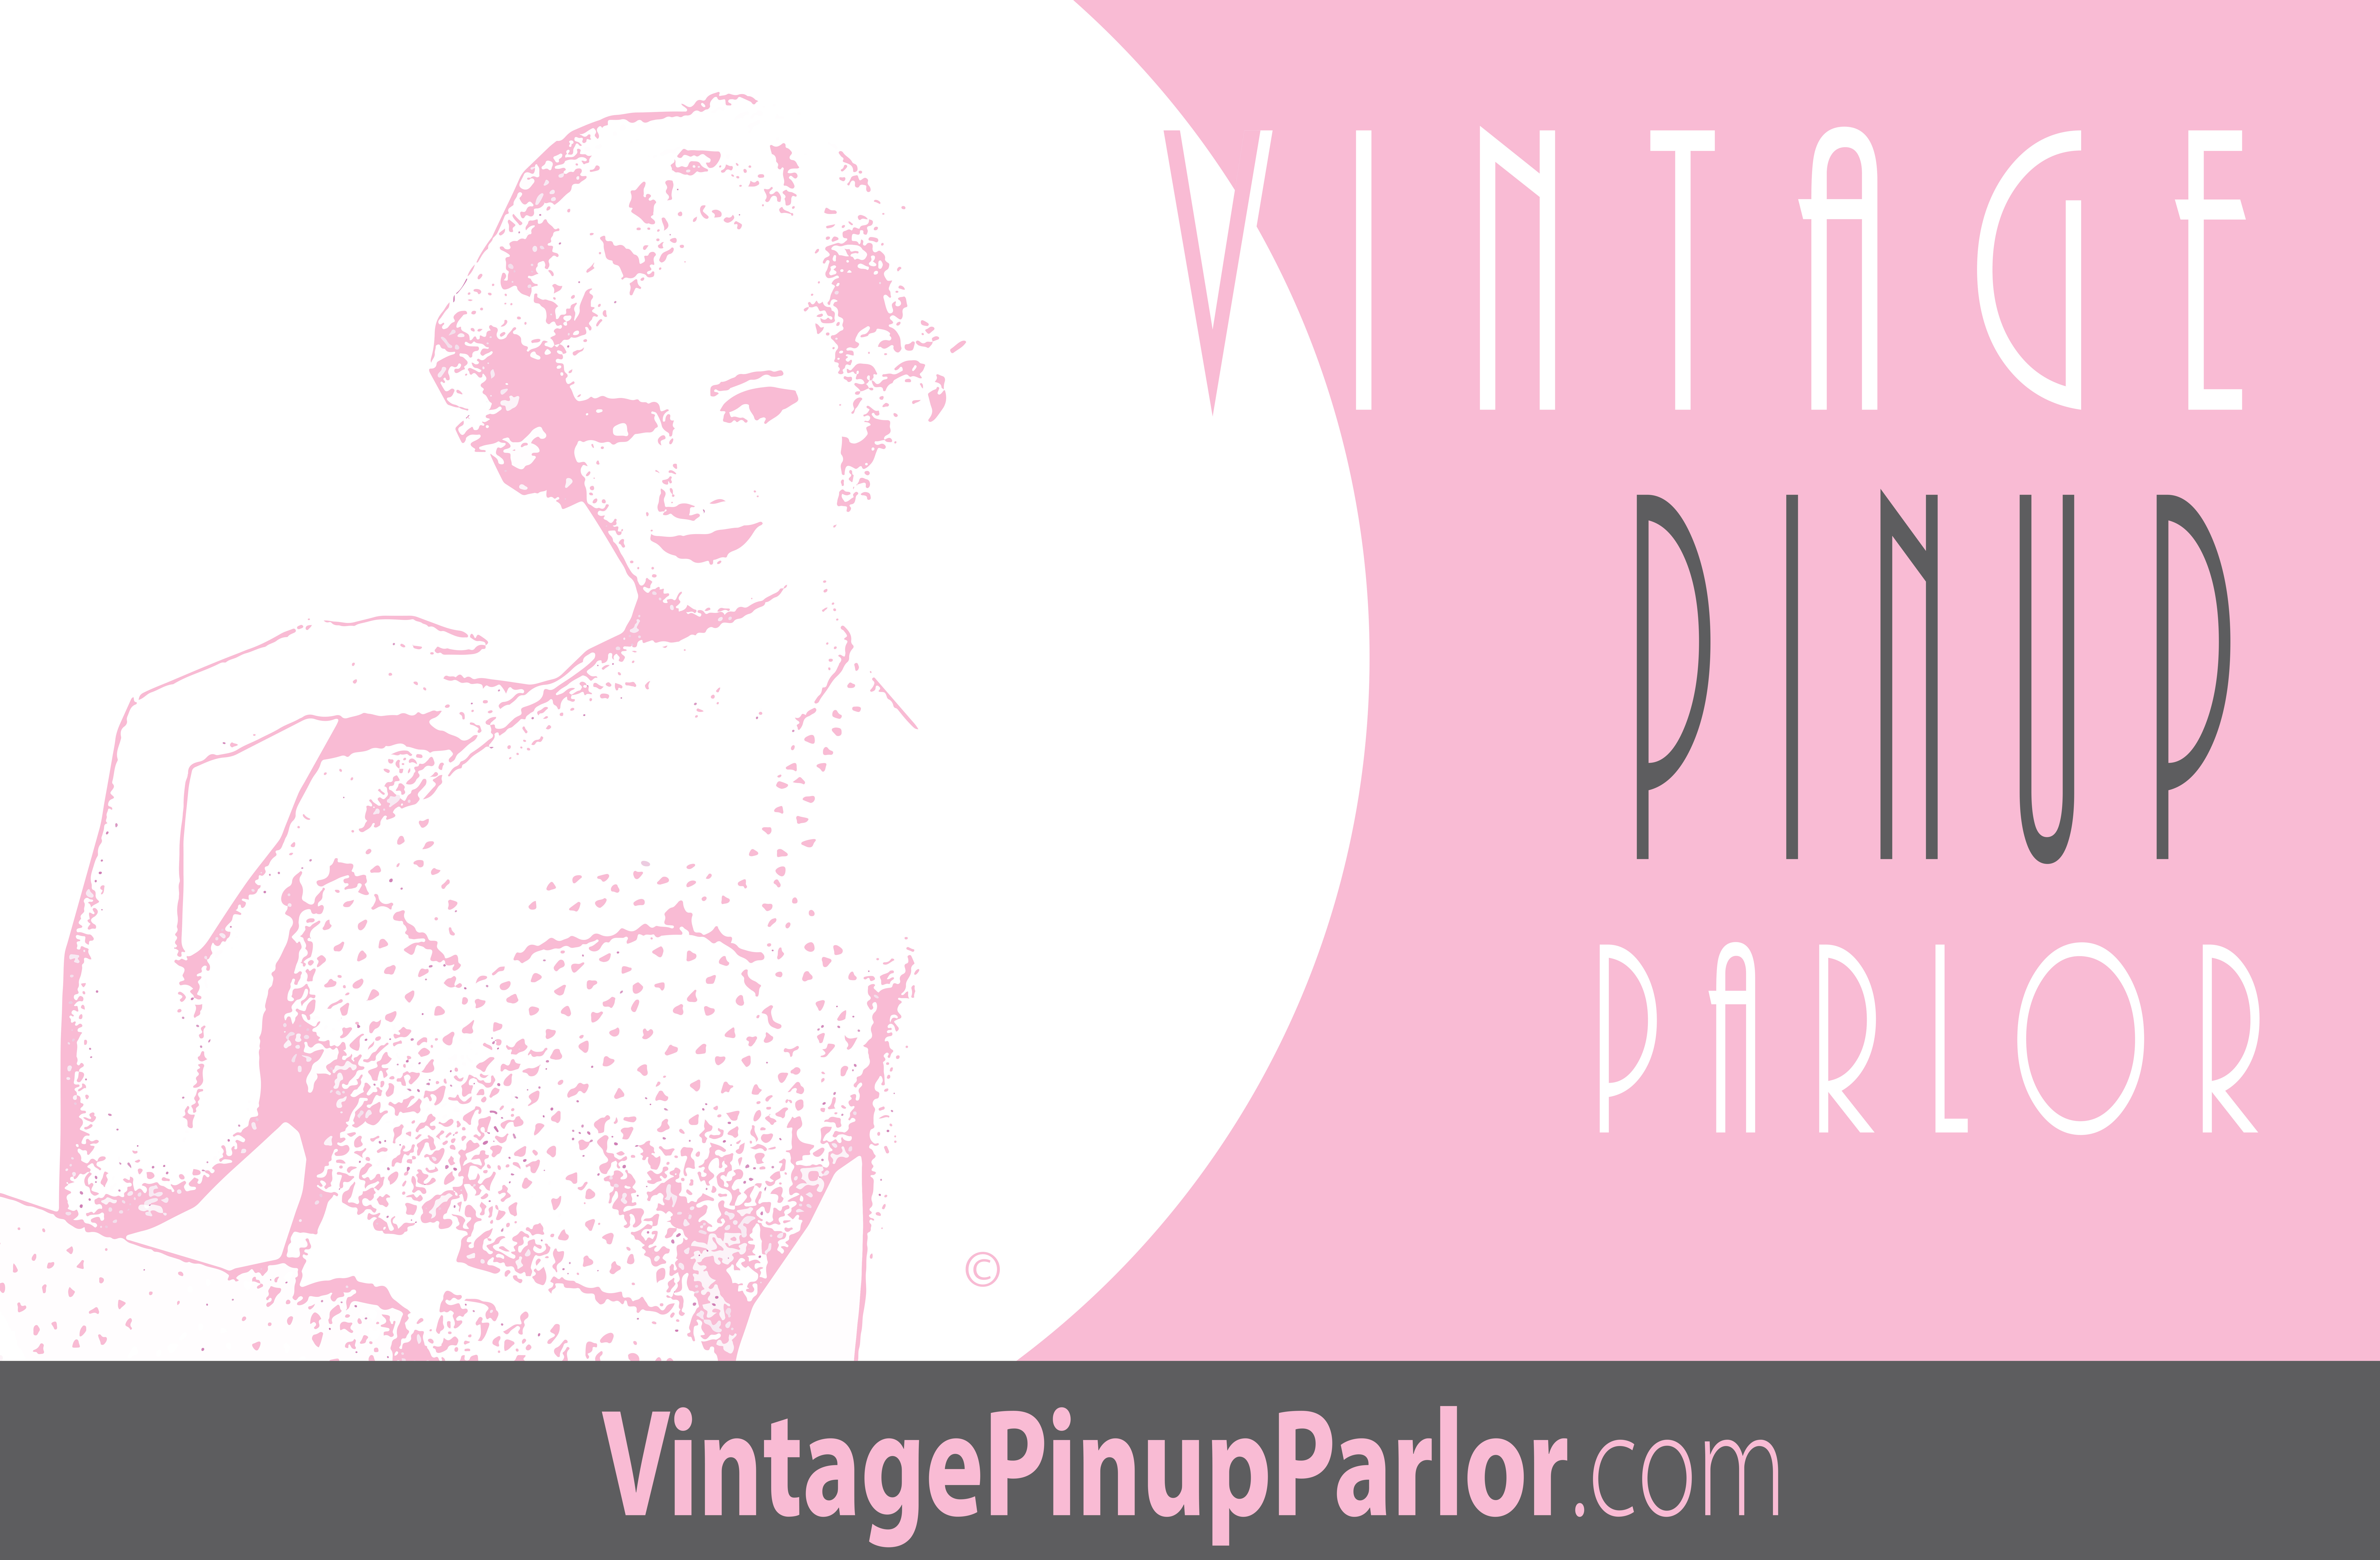 The Vintage Pin-up Parlor